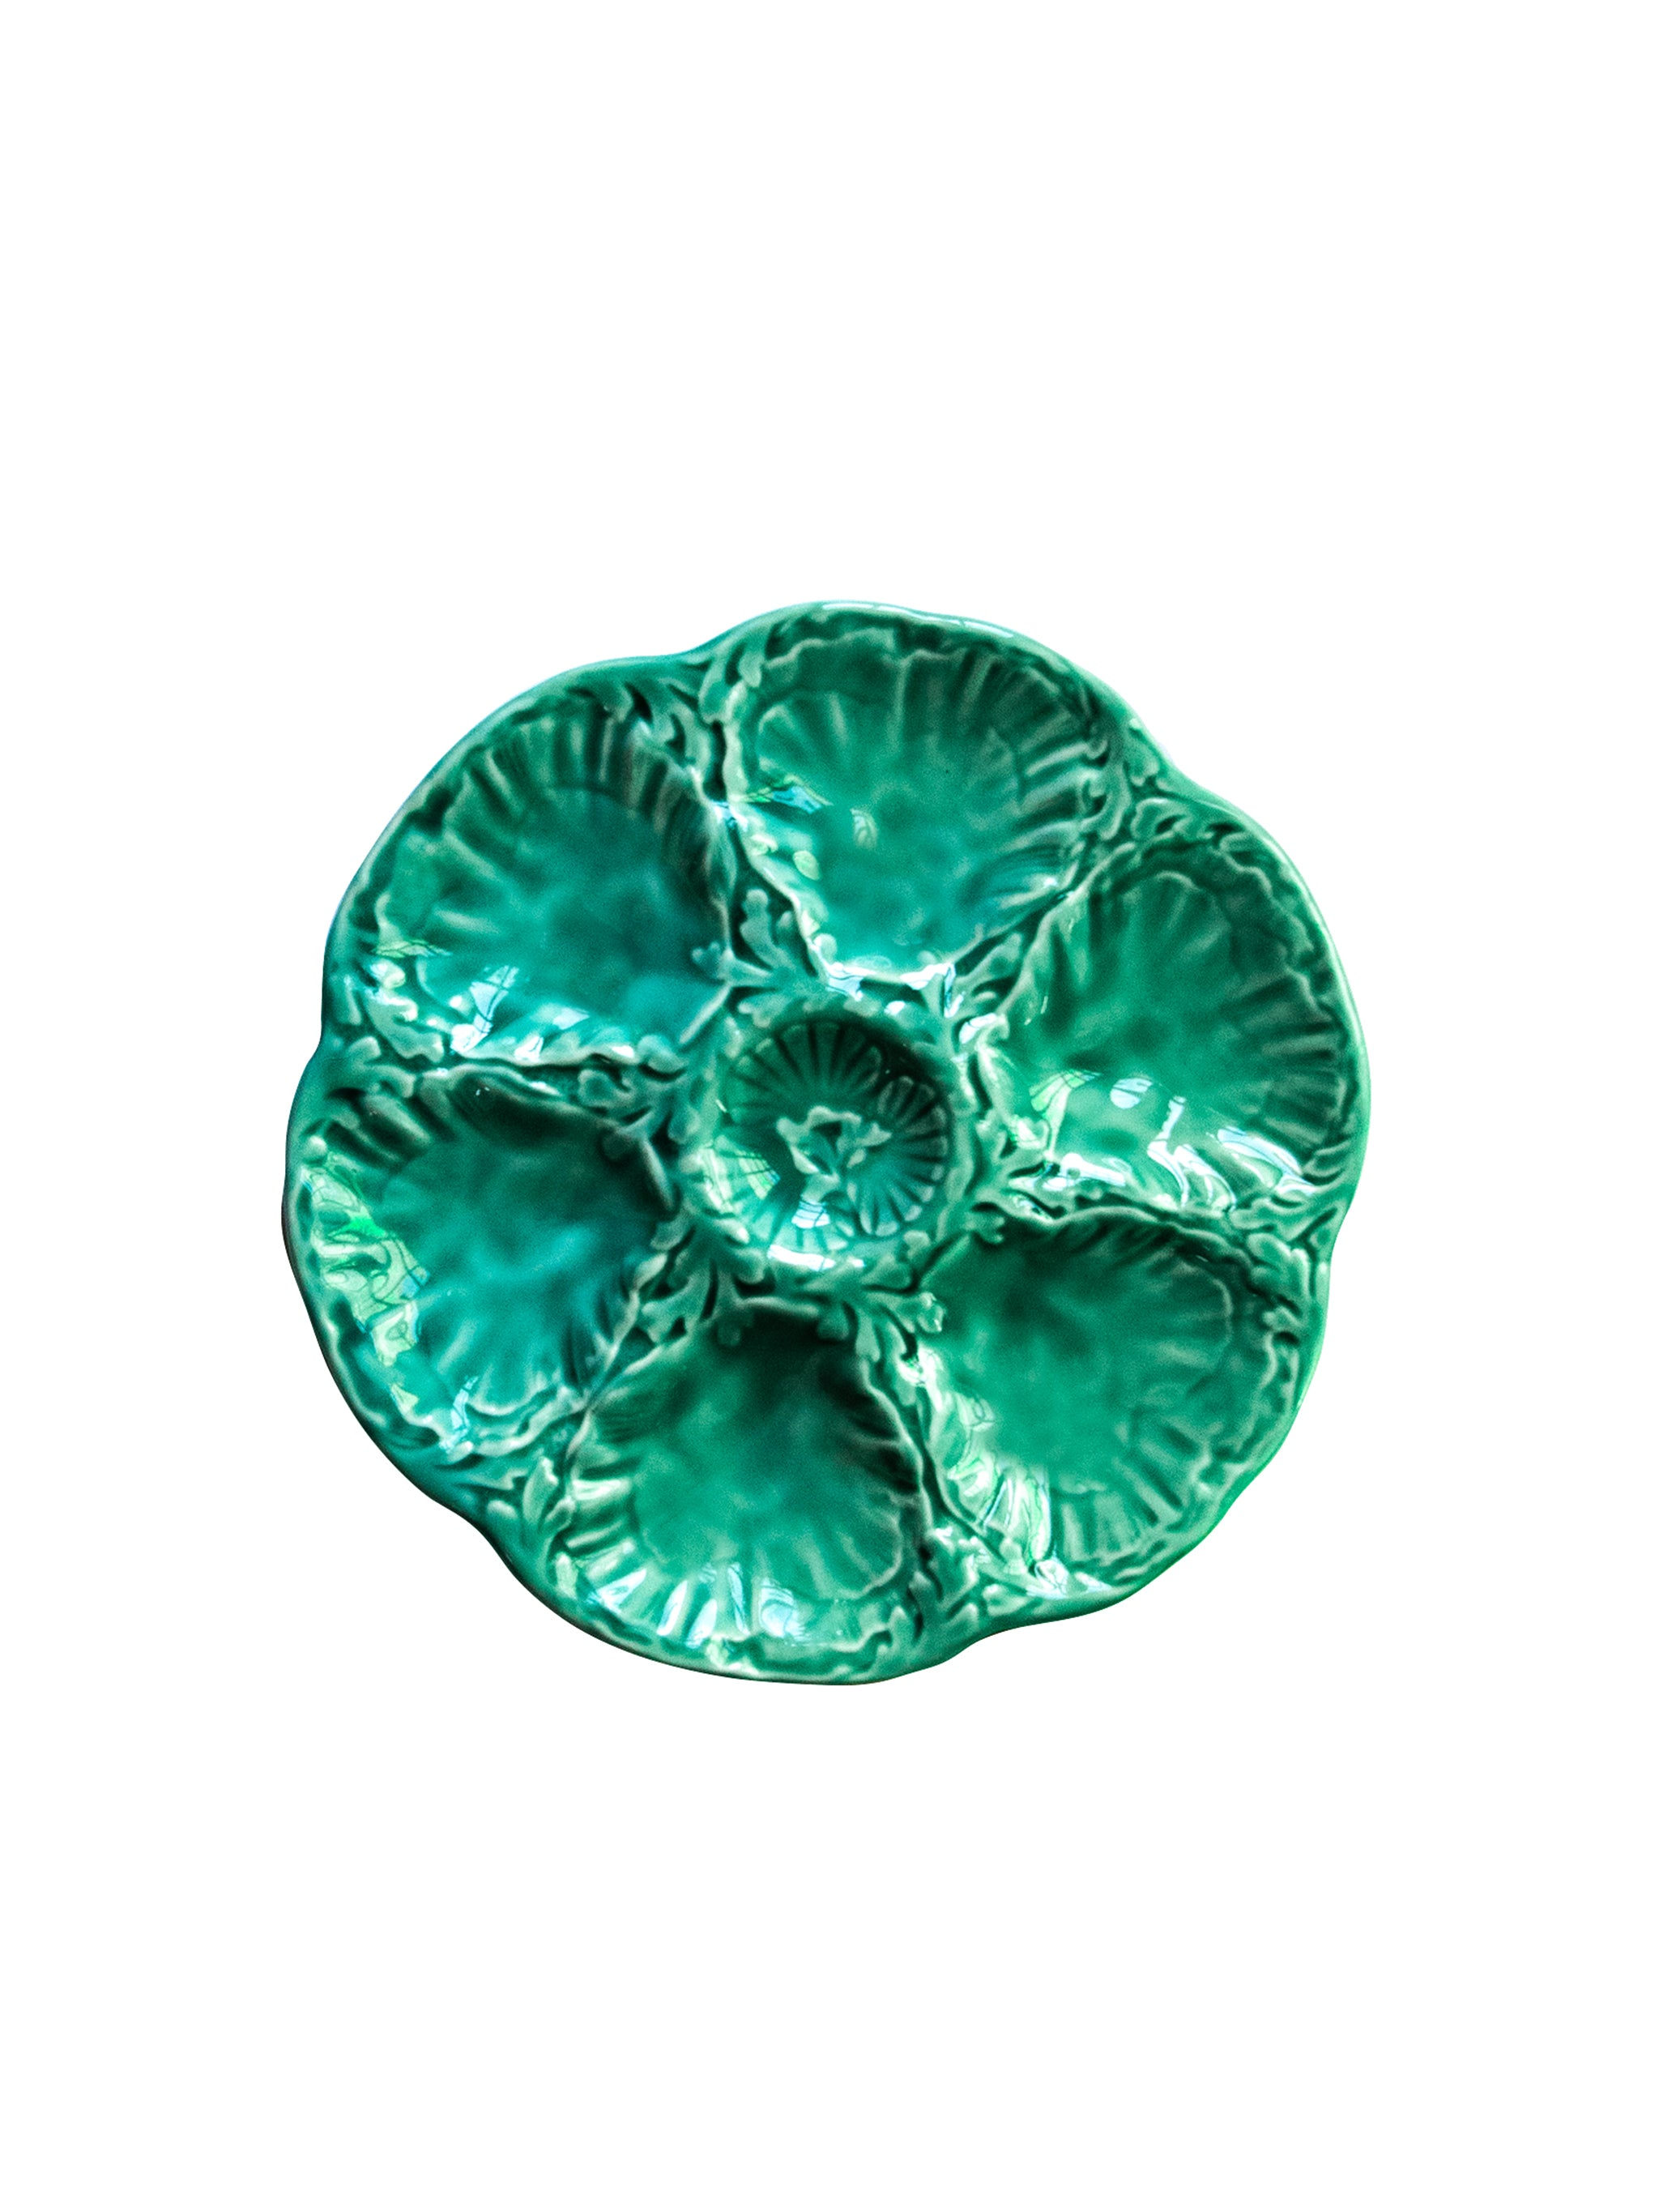 VINTAGE TURQUOISE OYSTER PLATE GIAN FRANCE 6 WELLS MAJOLICA EX COND